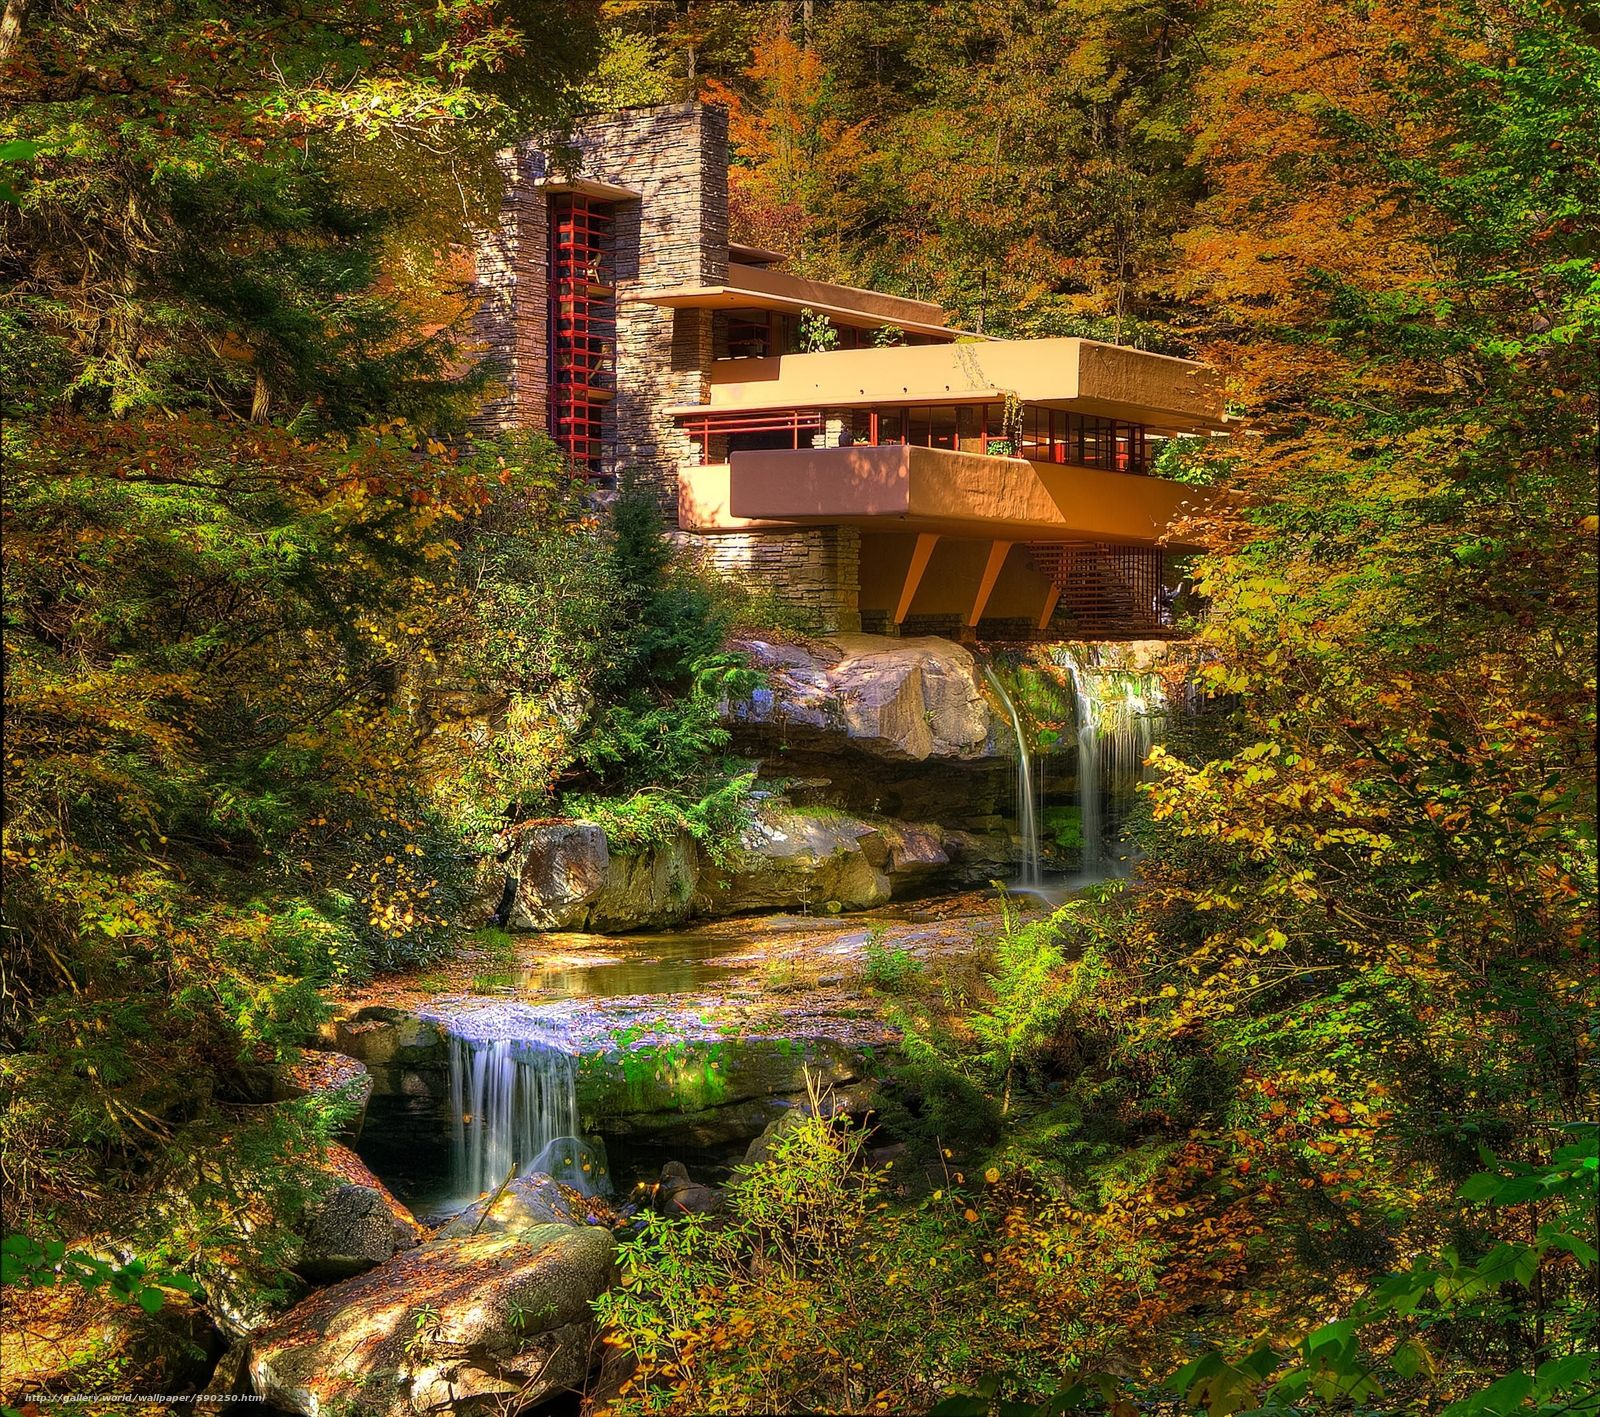 Download wallpaper Fallingwater Pennsylvania autumn waterfall 1600x1417